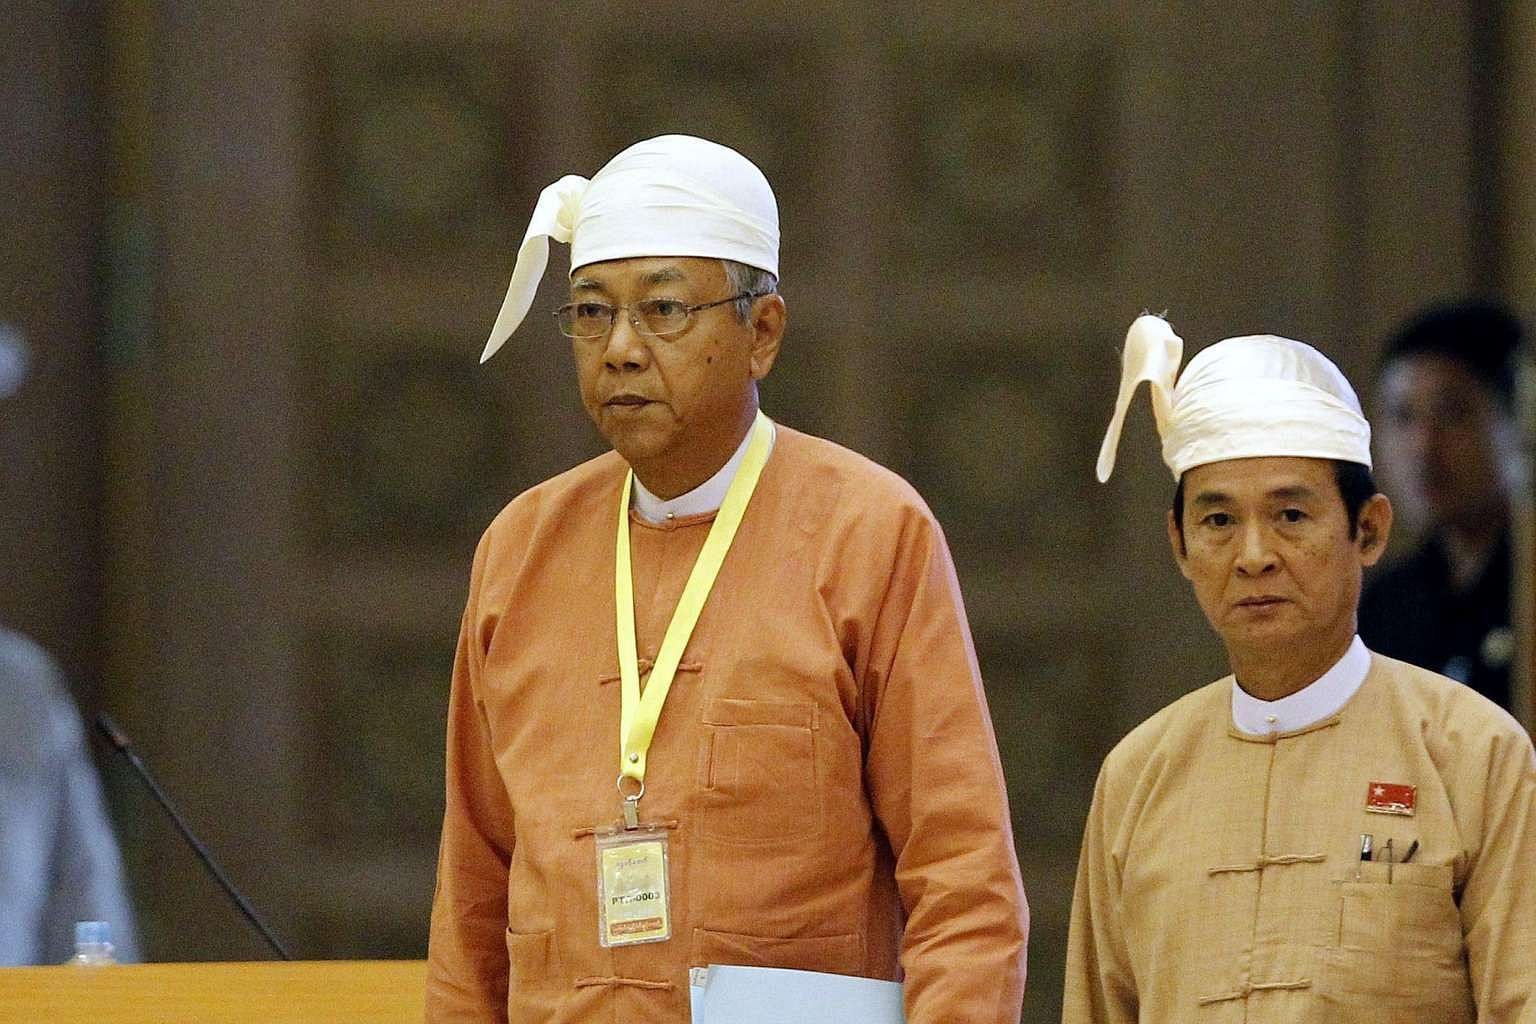 Newly elected Myanmar President Htin Kyaw (left) attending a parliamentary session in Naypyitaw on March 21.